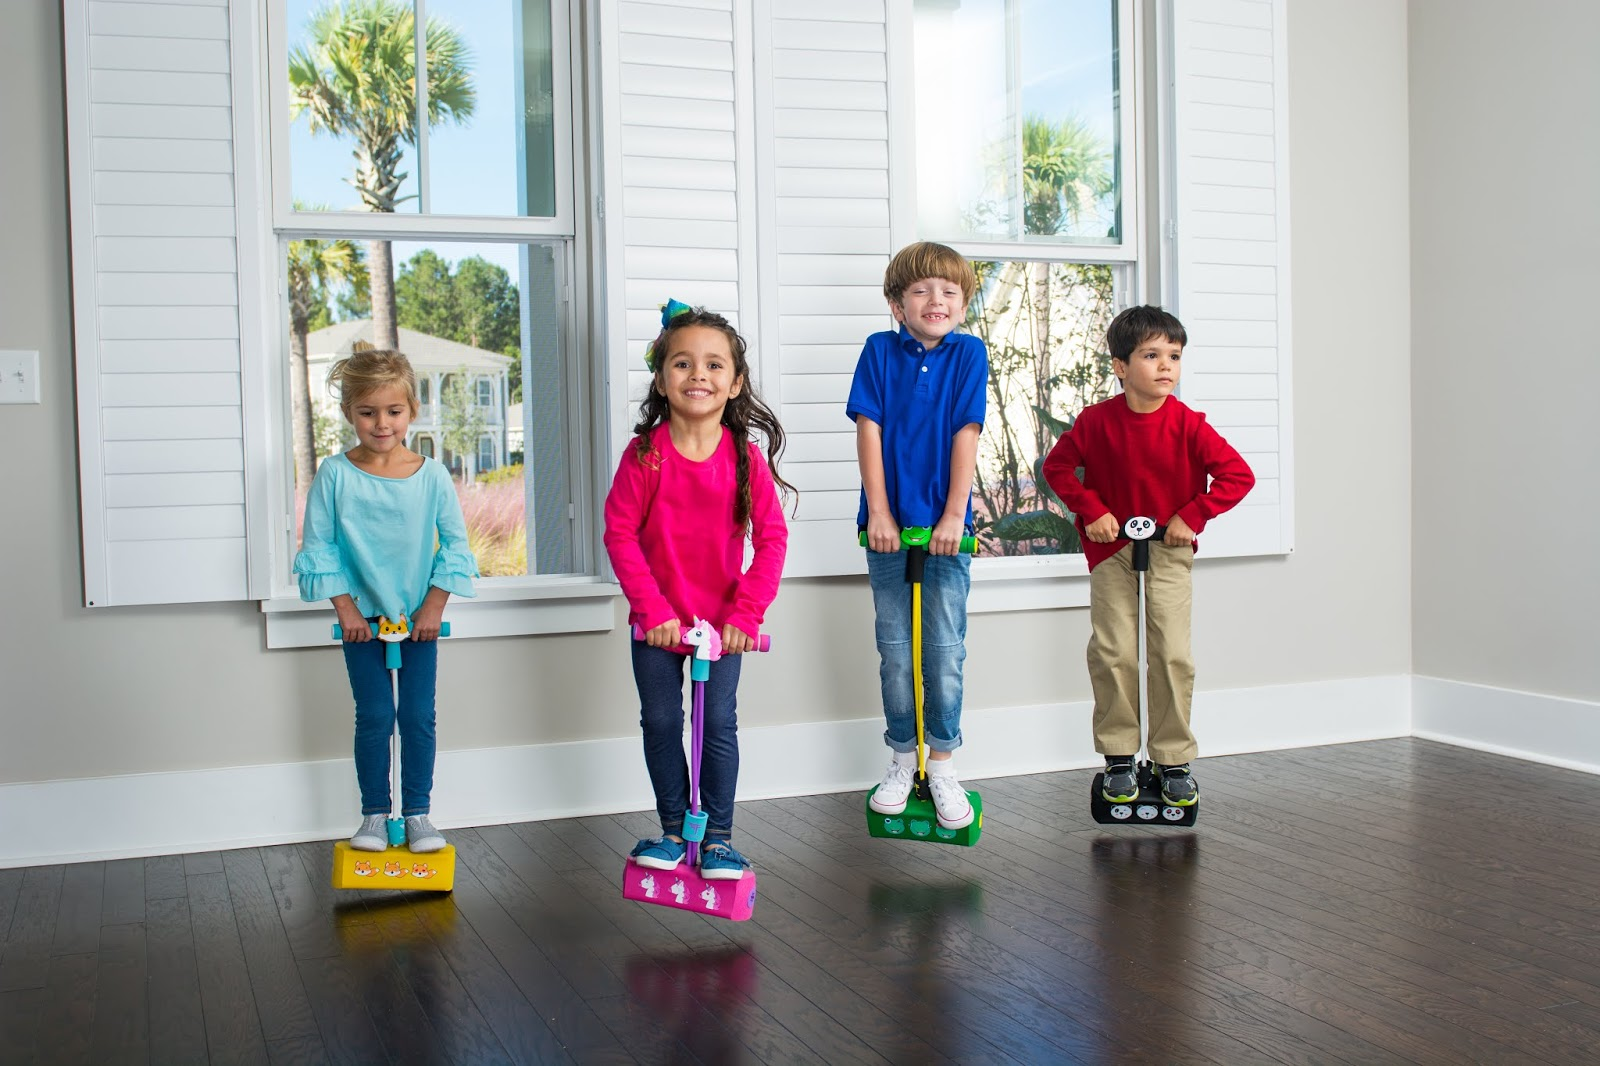 Enter for a chance to #Win a My First Flybar POGO PALS when this #Giveaway ends 12/15. #GiveawayAlert #Prize #Free #Gift #Holiday